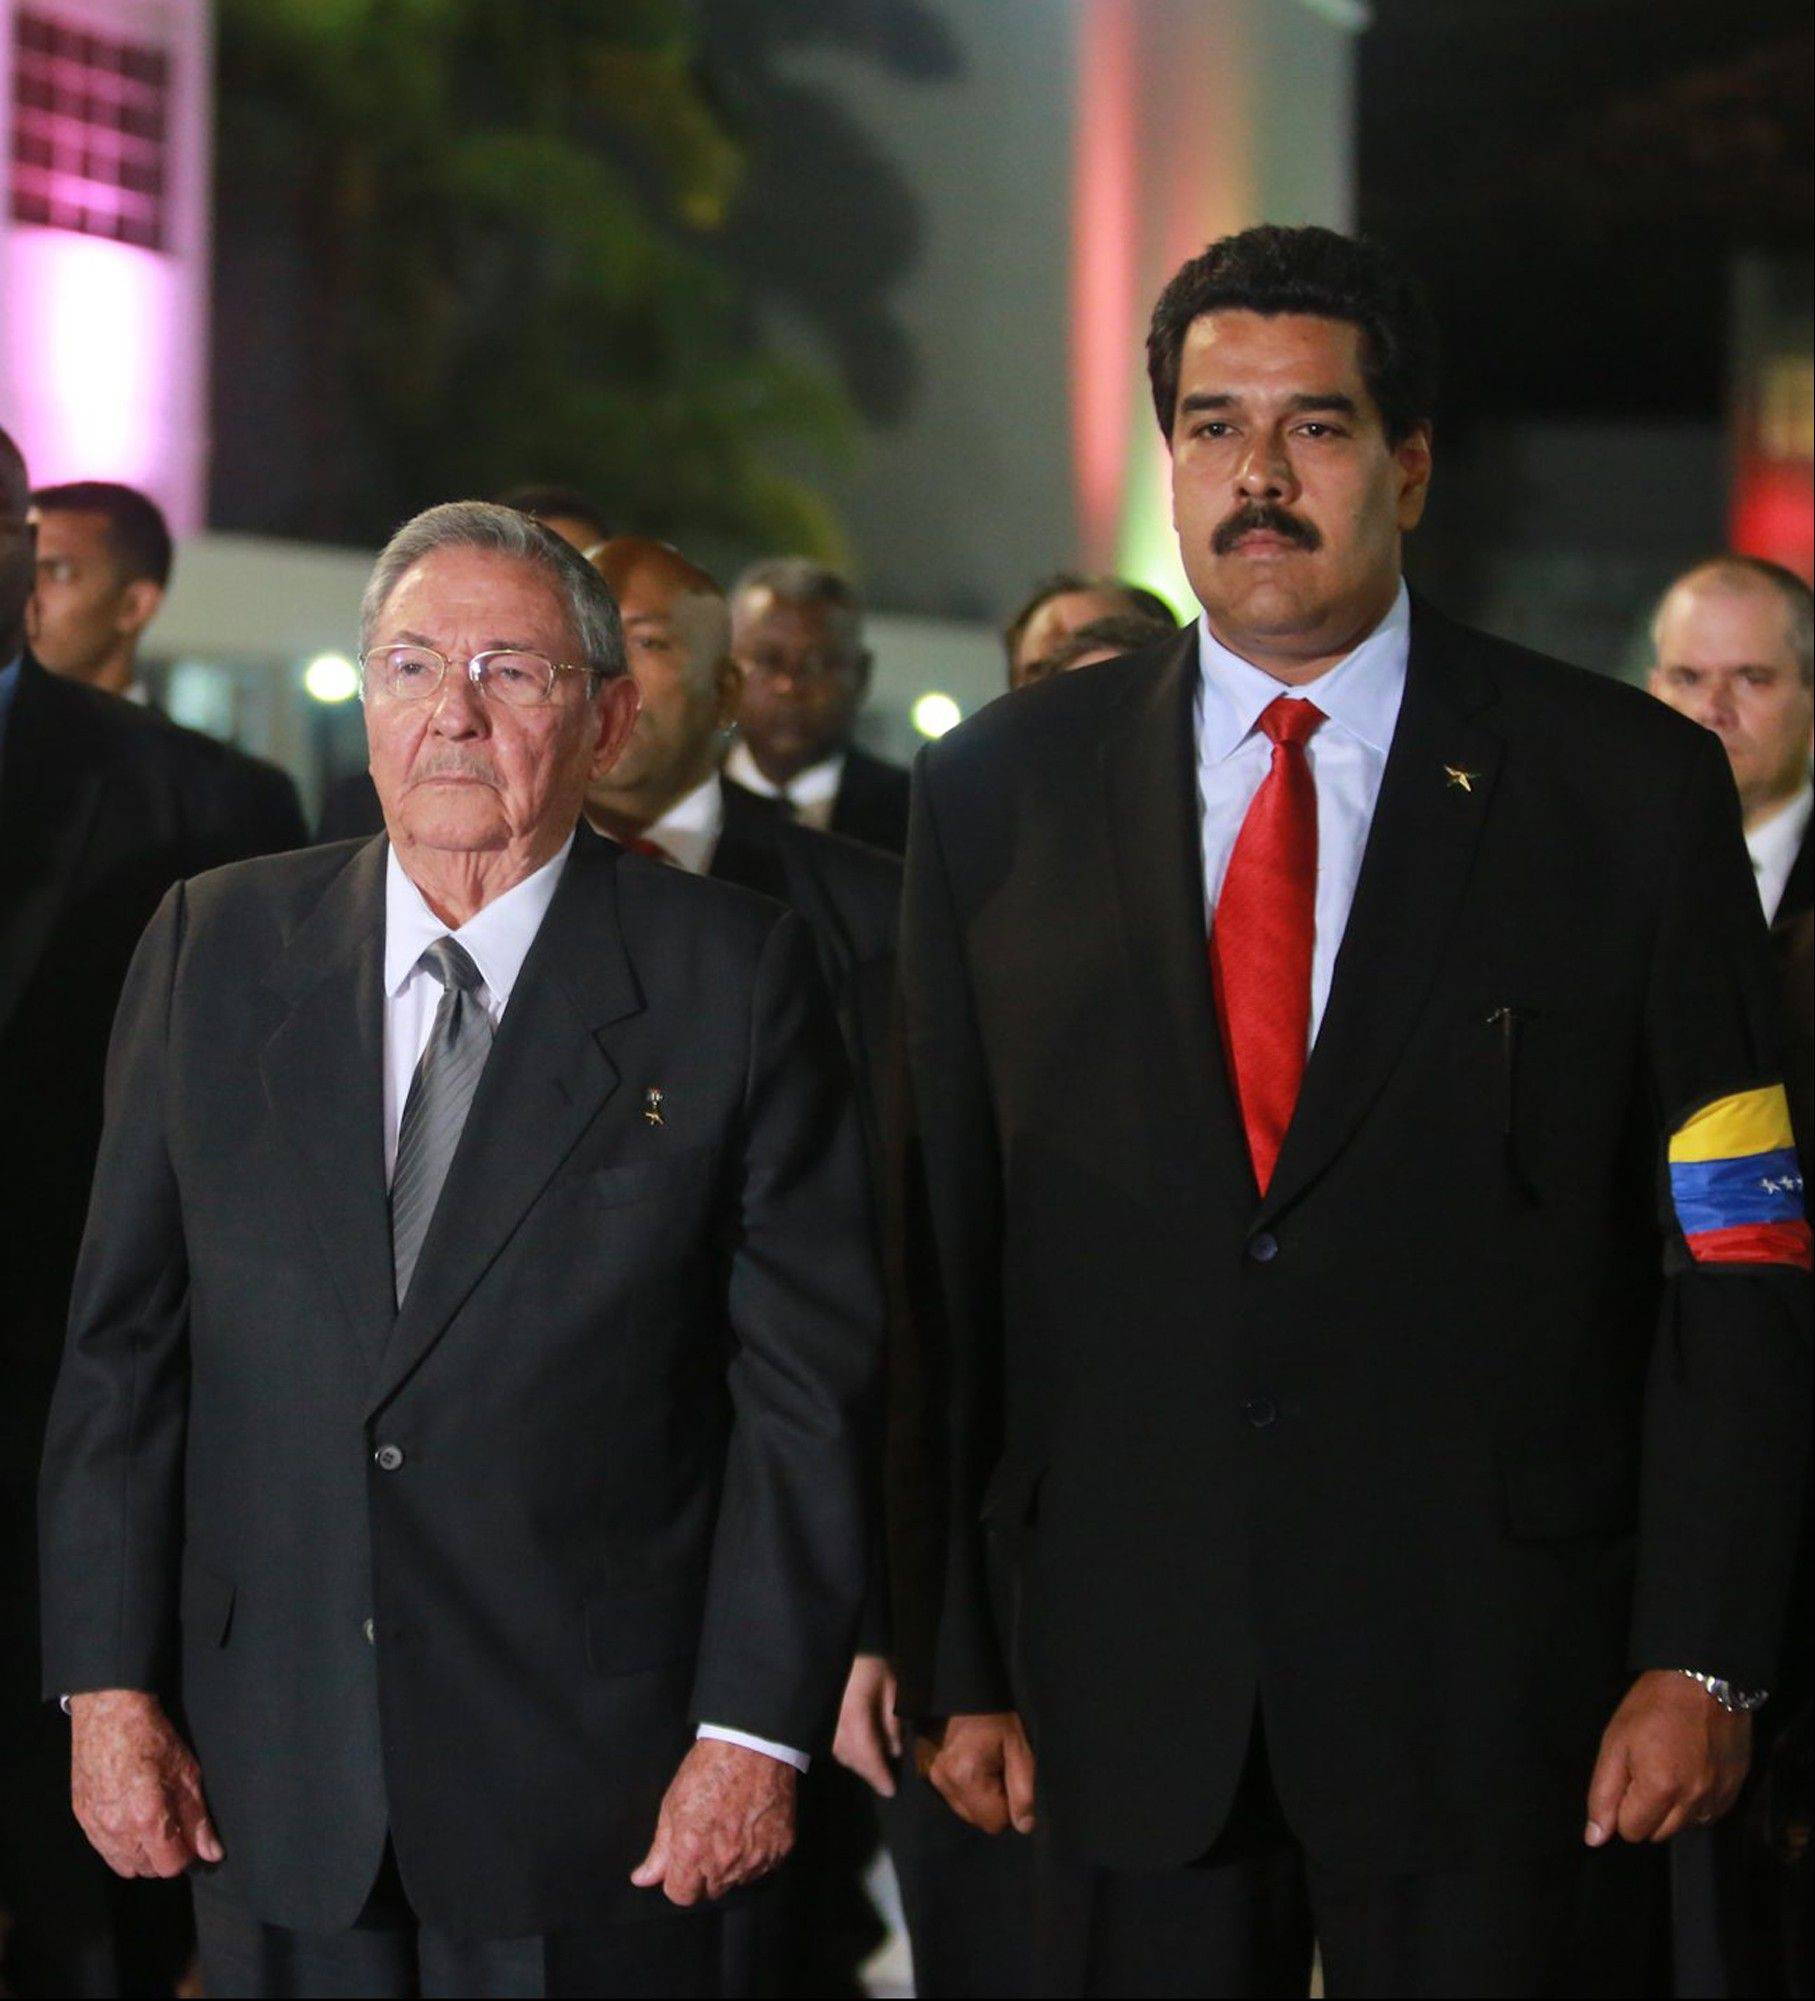 Cuba's President Raul Castro, left, and Venezuela's Vice President Nicolas Maduro stand upon their arrival to the Fort Tiuna military academy to visit the coffin containing the body of Venezuela's late President Hugo Chavez. Maduro is scheduled to be sworn in as president after Friday's funeral.